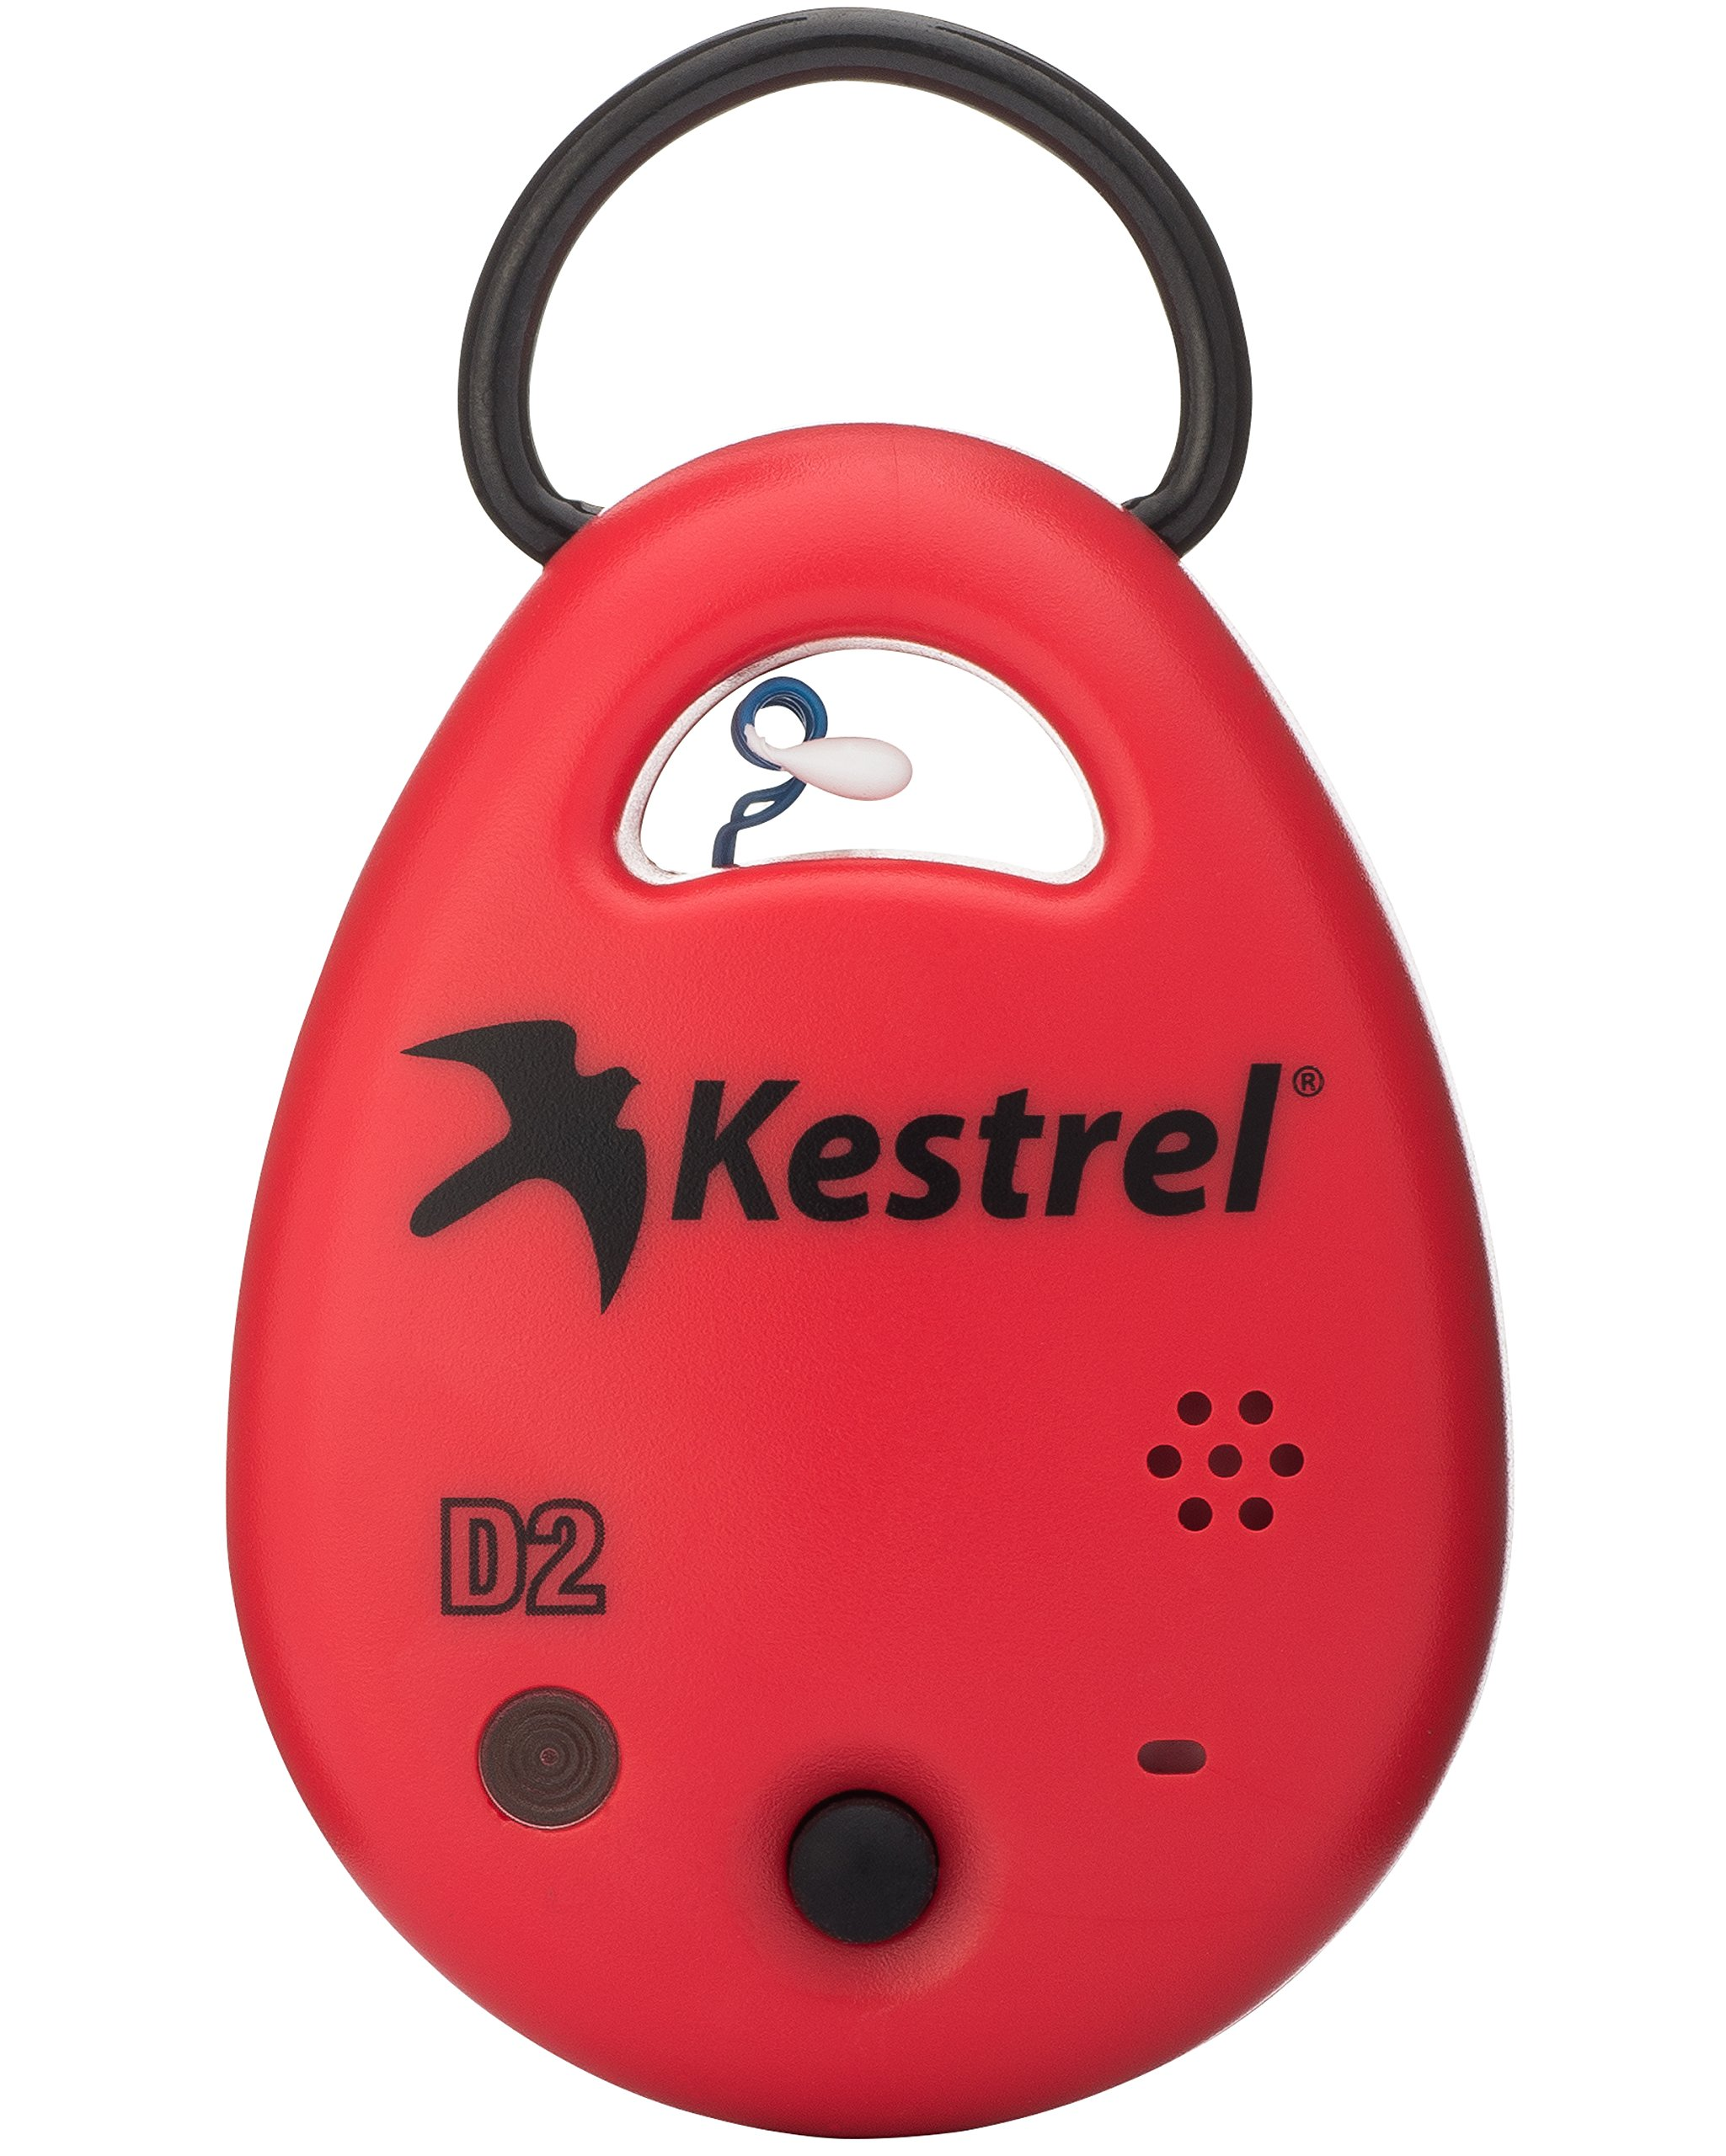 Kestrel Drop 2 Smart Humidity Data Logger by Kestrel